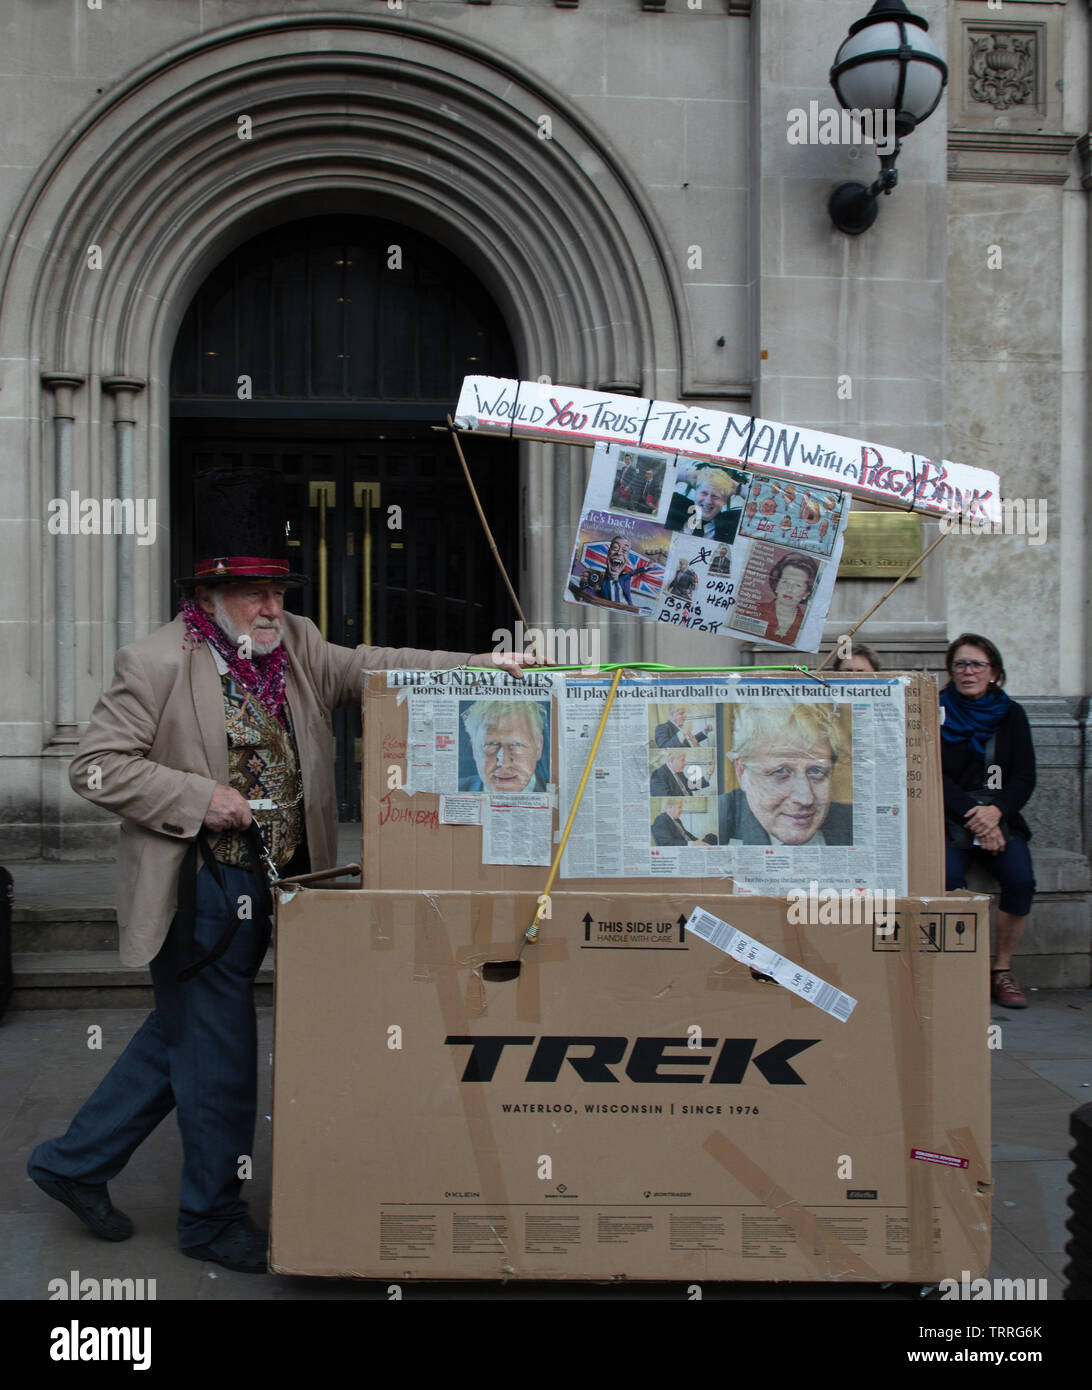 London, UK. 11th June 2019. Protester on no 1 Parliament Street, London, UK, with a collage of newspaper articles depicting Boris Johnson, once of the candidates for the job of Prime Minister of the UK, asking the question 'would you trust this man with a piggy bank'. Credit: Joe Kuis / Alamy News Stock Photo